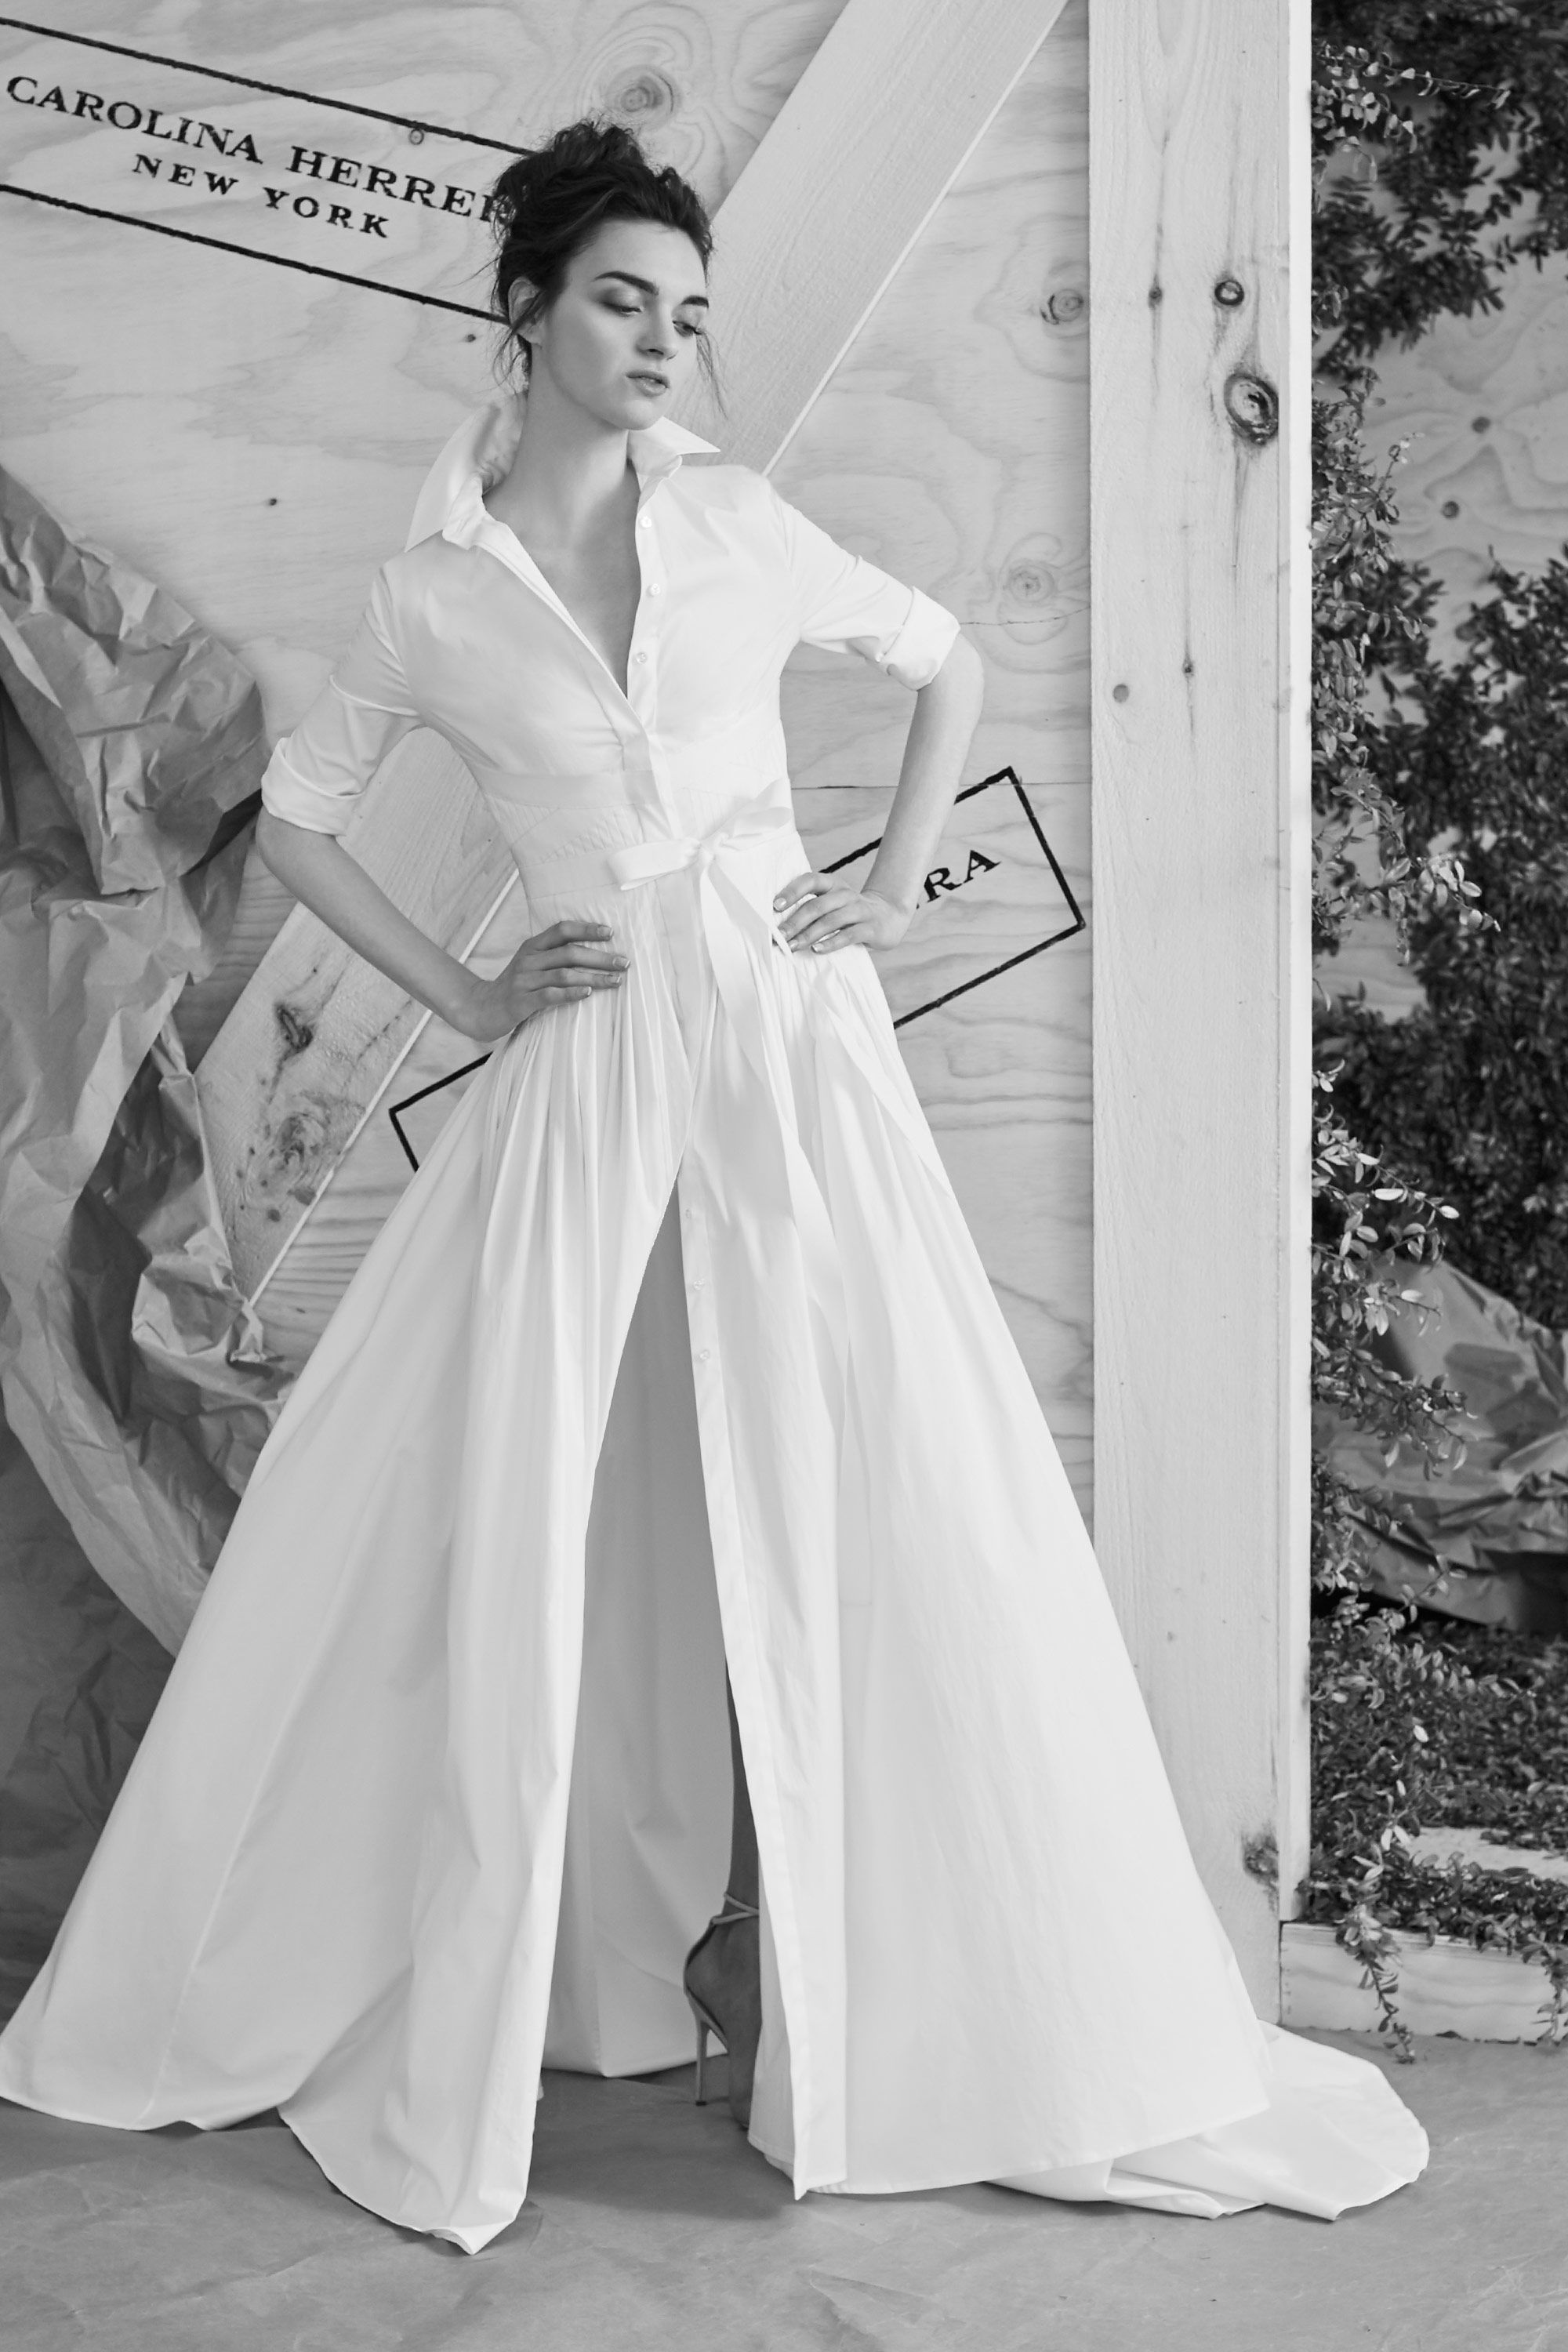 beach wedding dresses beachy wedding dresses 99 Beautiful Beach Wedding Dresses Bridal Gowns for a Beach Destination Wedding